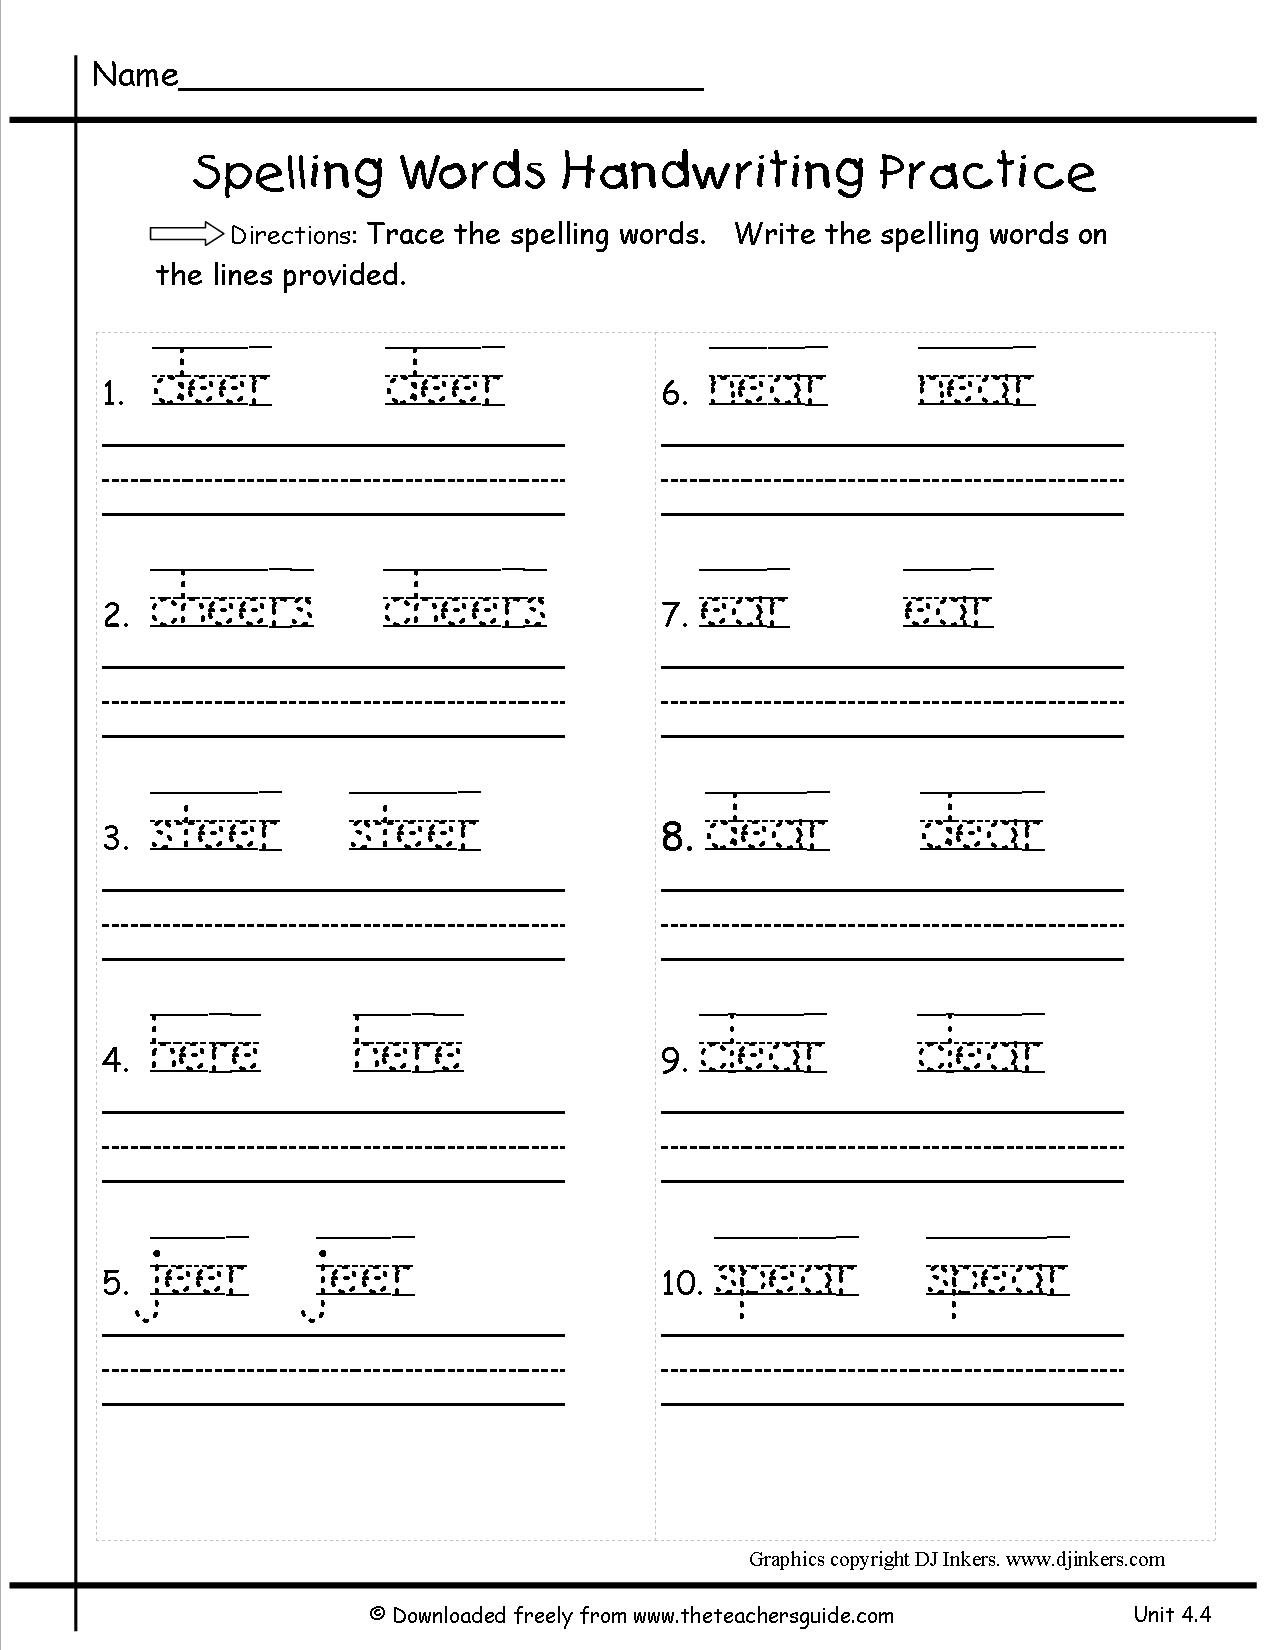 Daily Spelling Practice Worksheets